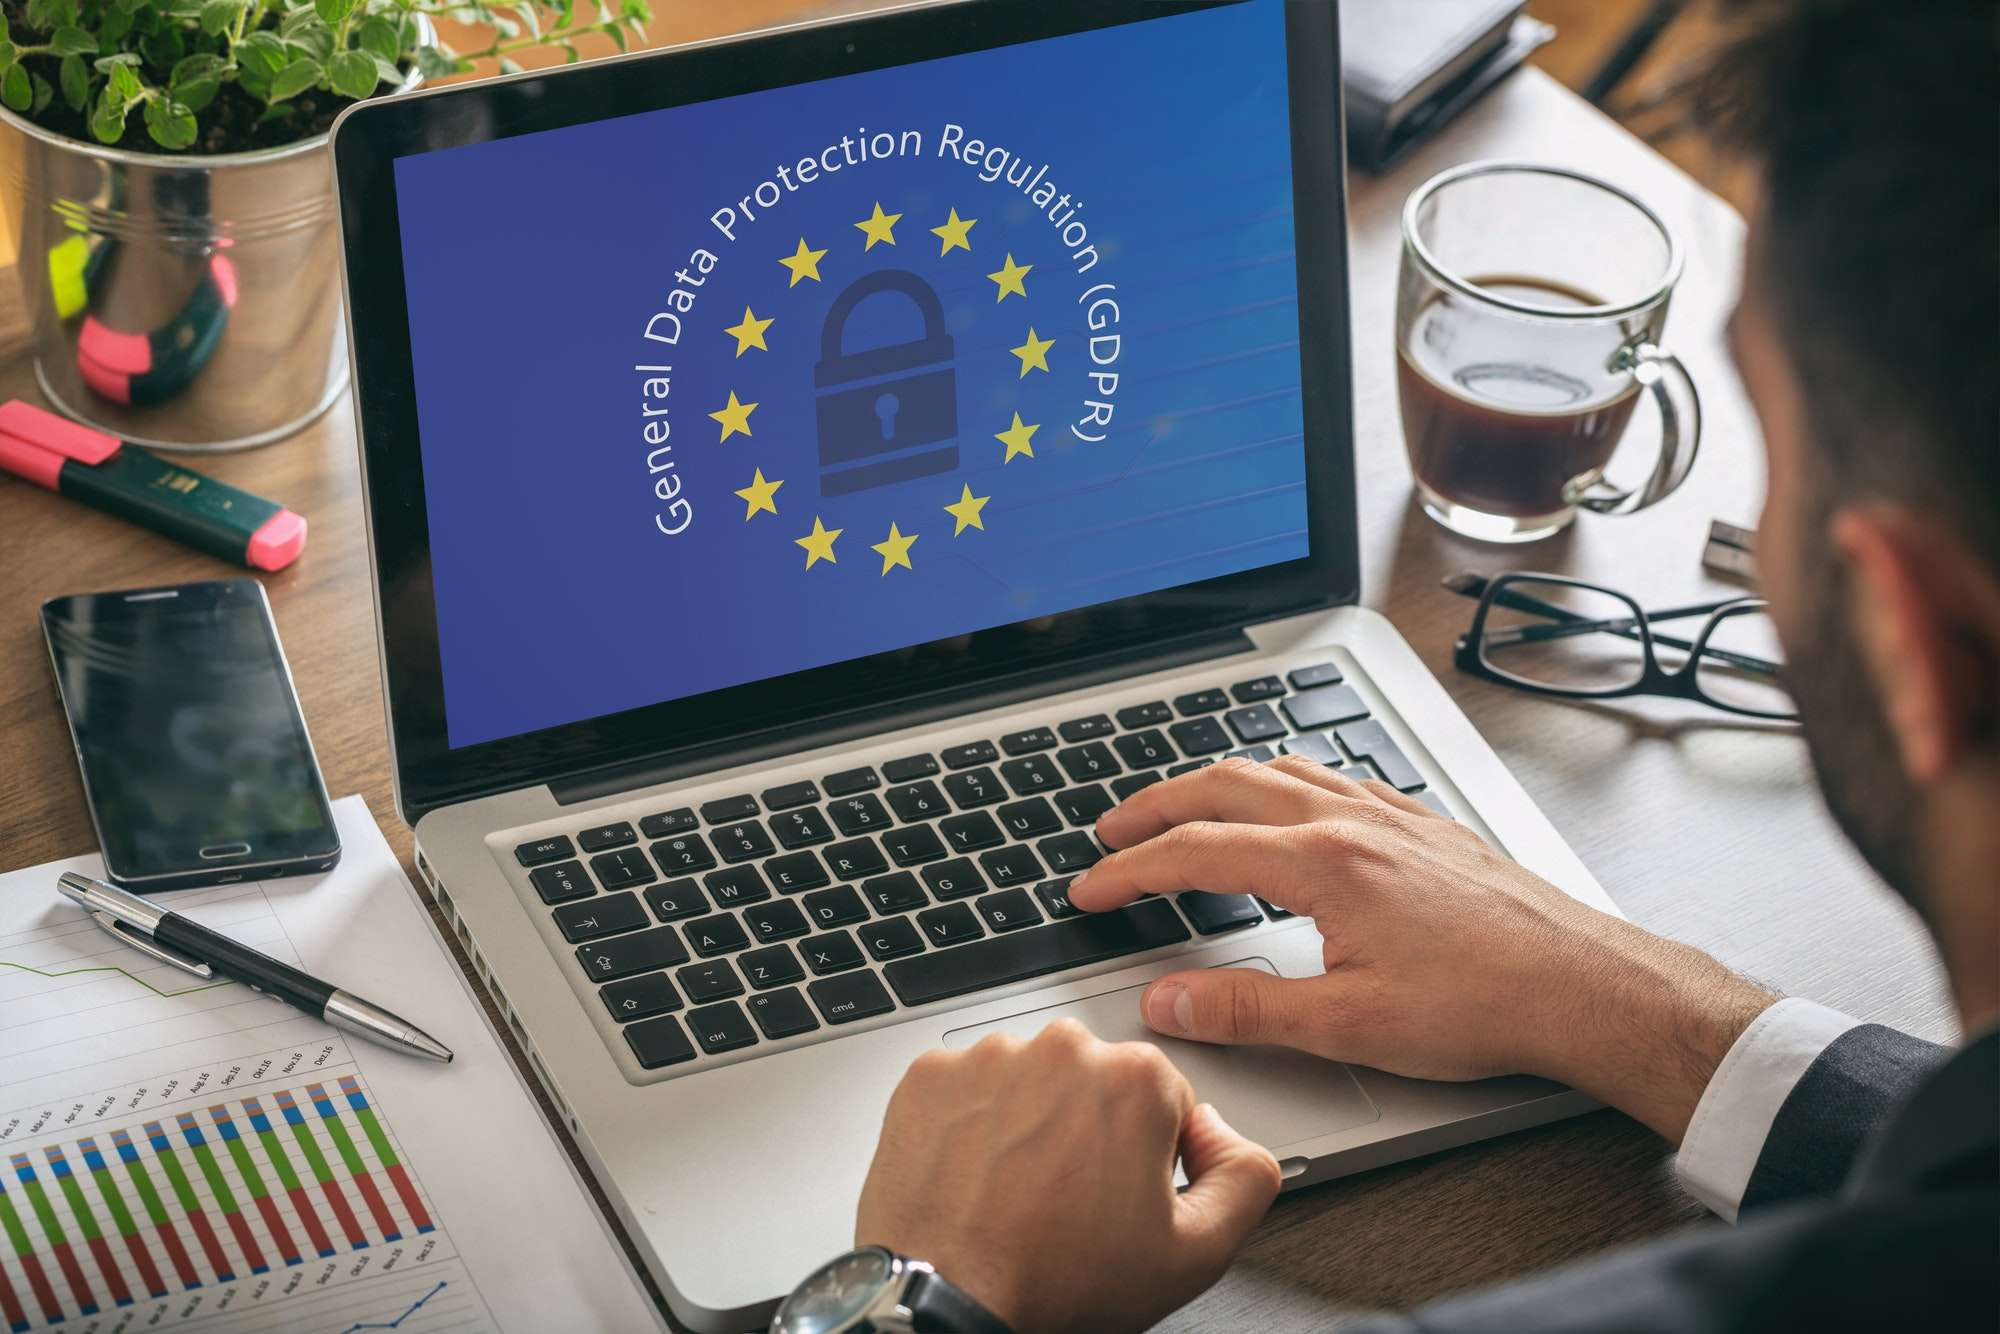 man working with a computer general data protection regulation and european union flag